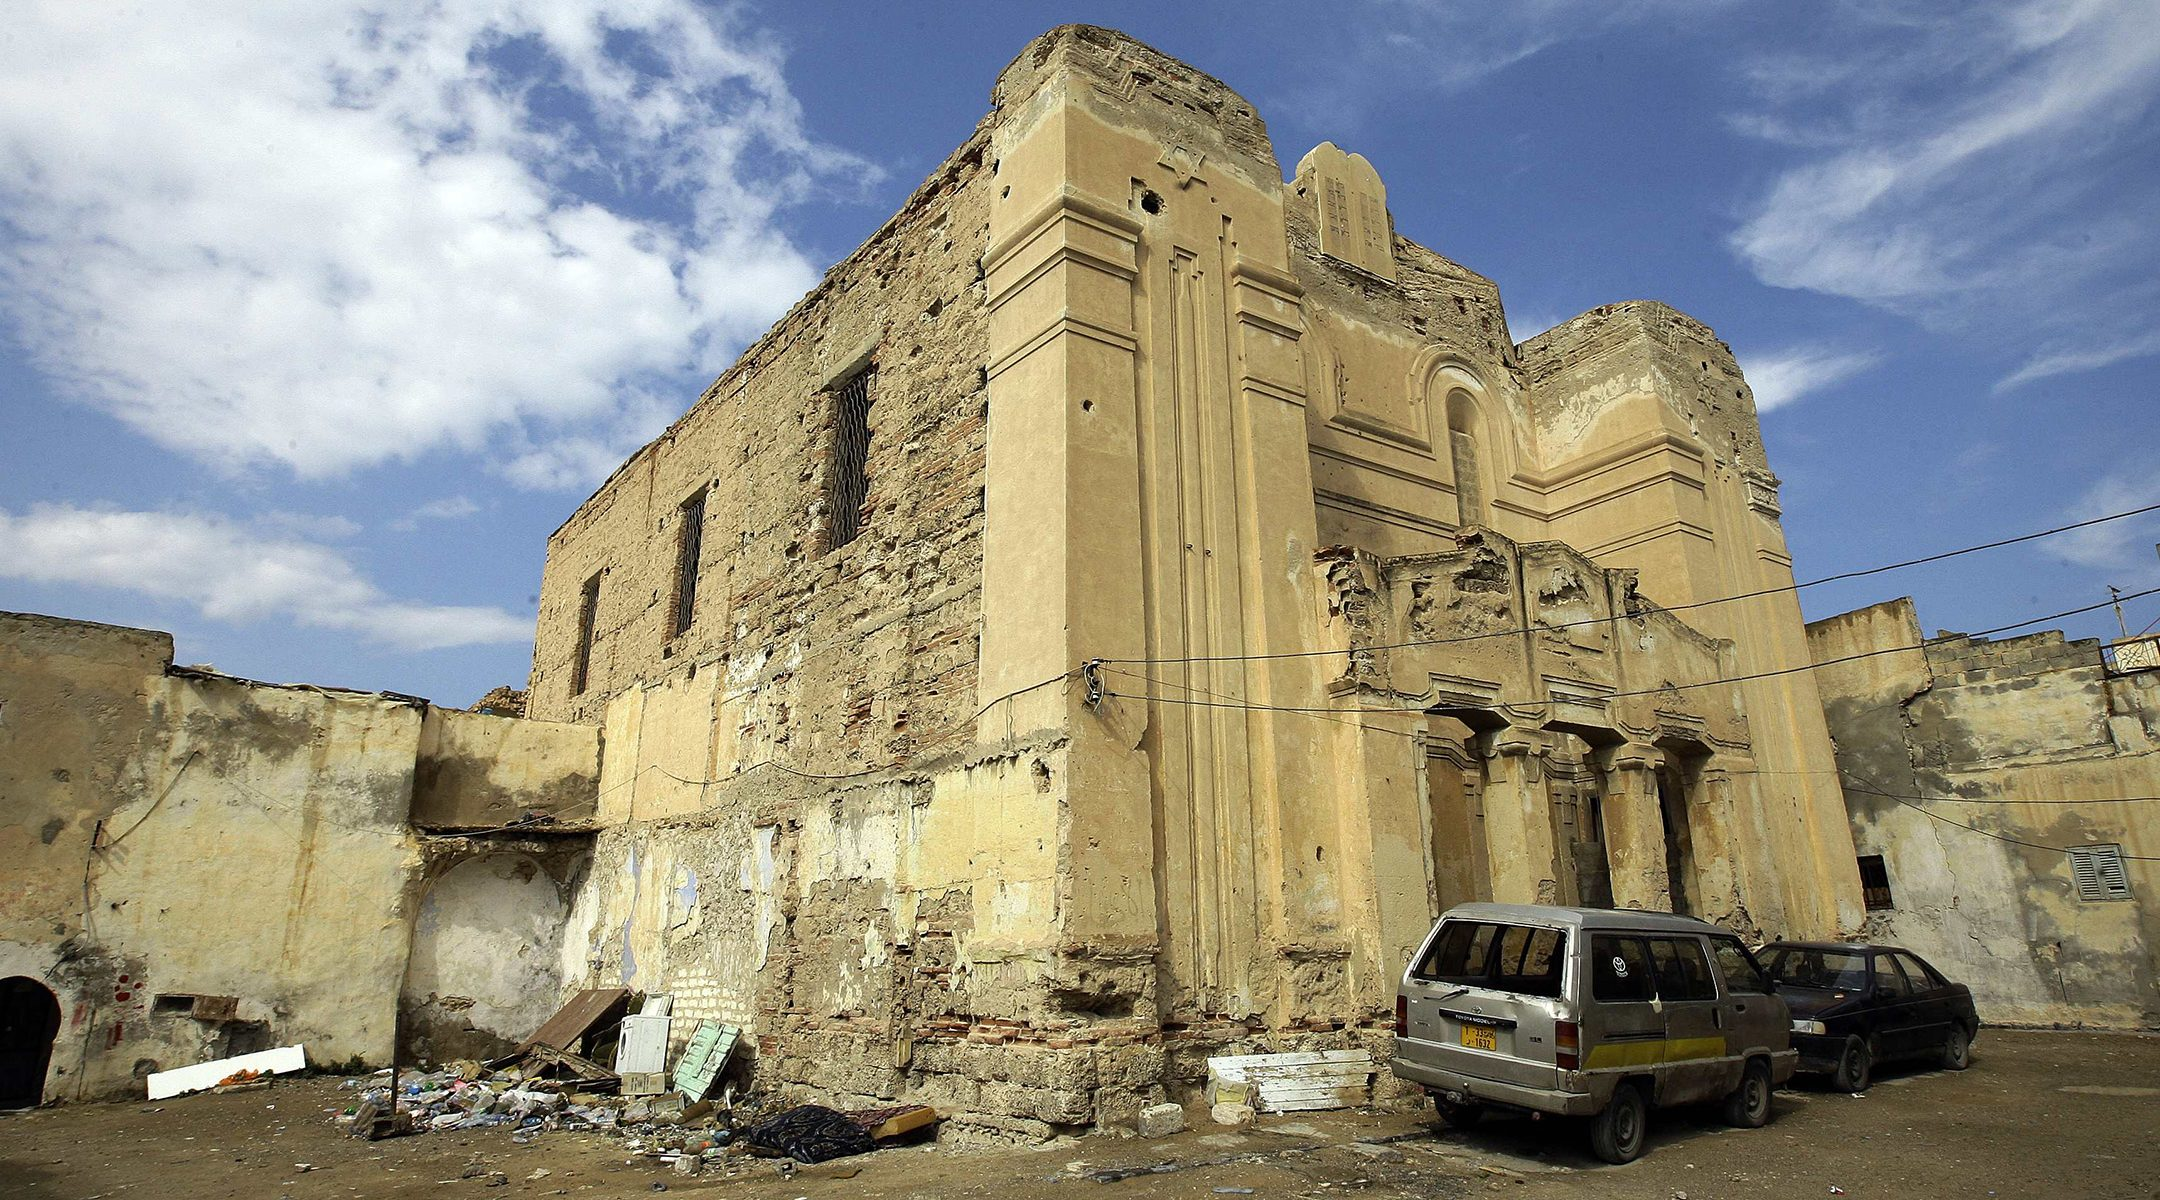 A picture shows the abandoned Dar Bishi synagogue in the Libyan capital Tripoli, Sept. 28, 2011. (Photo/JTA-Joseph Eid-AFP via Getty Images)